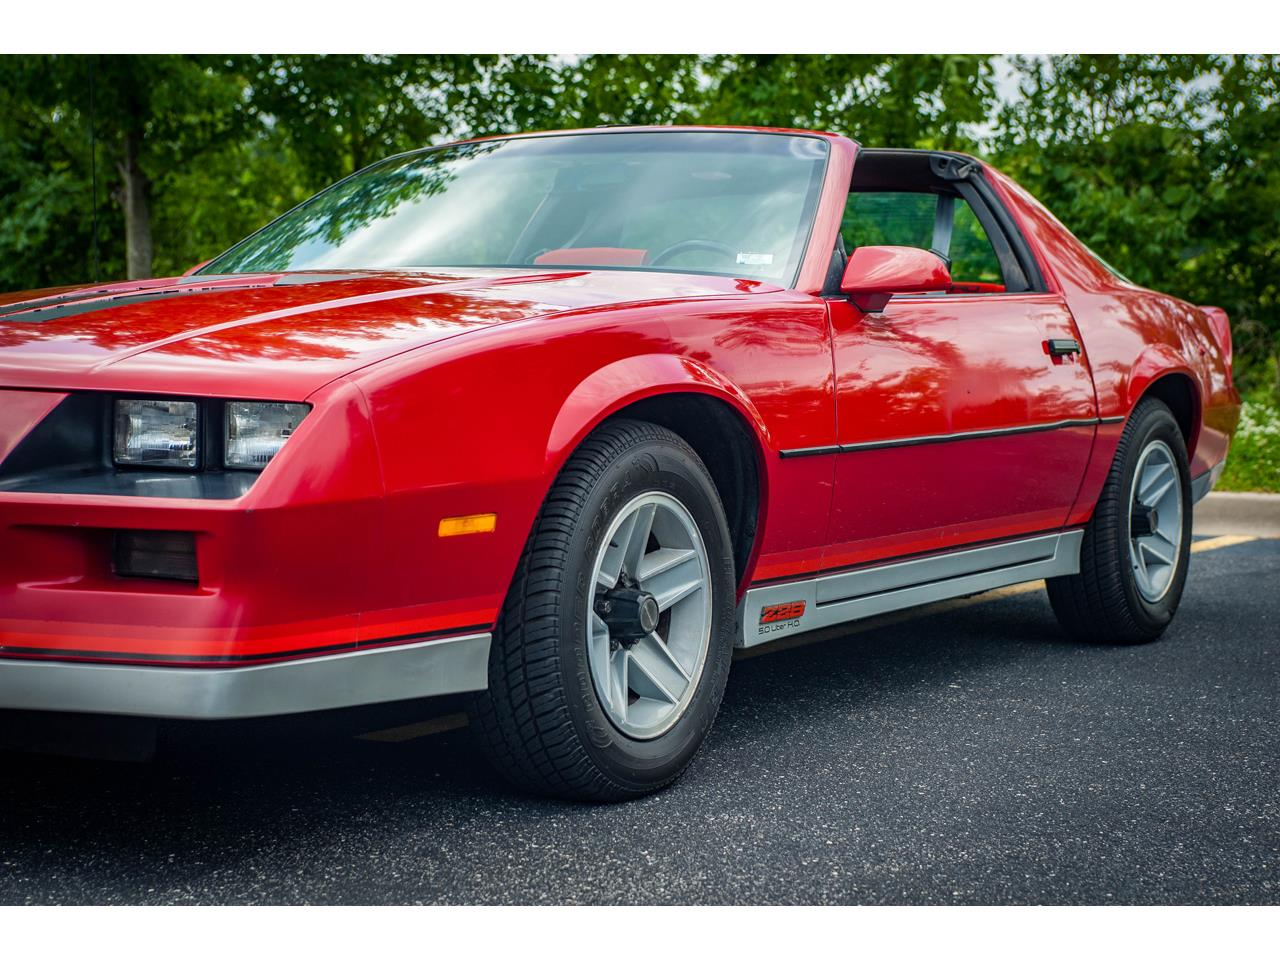 Large Picture of 1984 Camaro located in Illinois - $9,500.00 Offered by Gateway Classic Cars - St. Louis - QB9Y